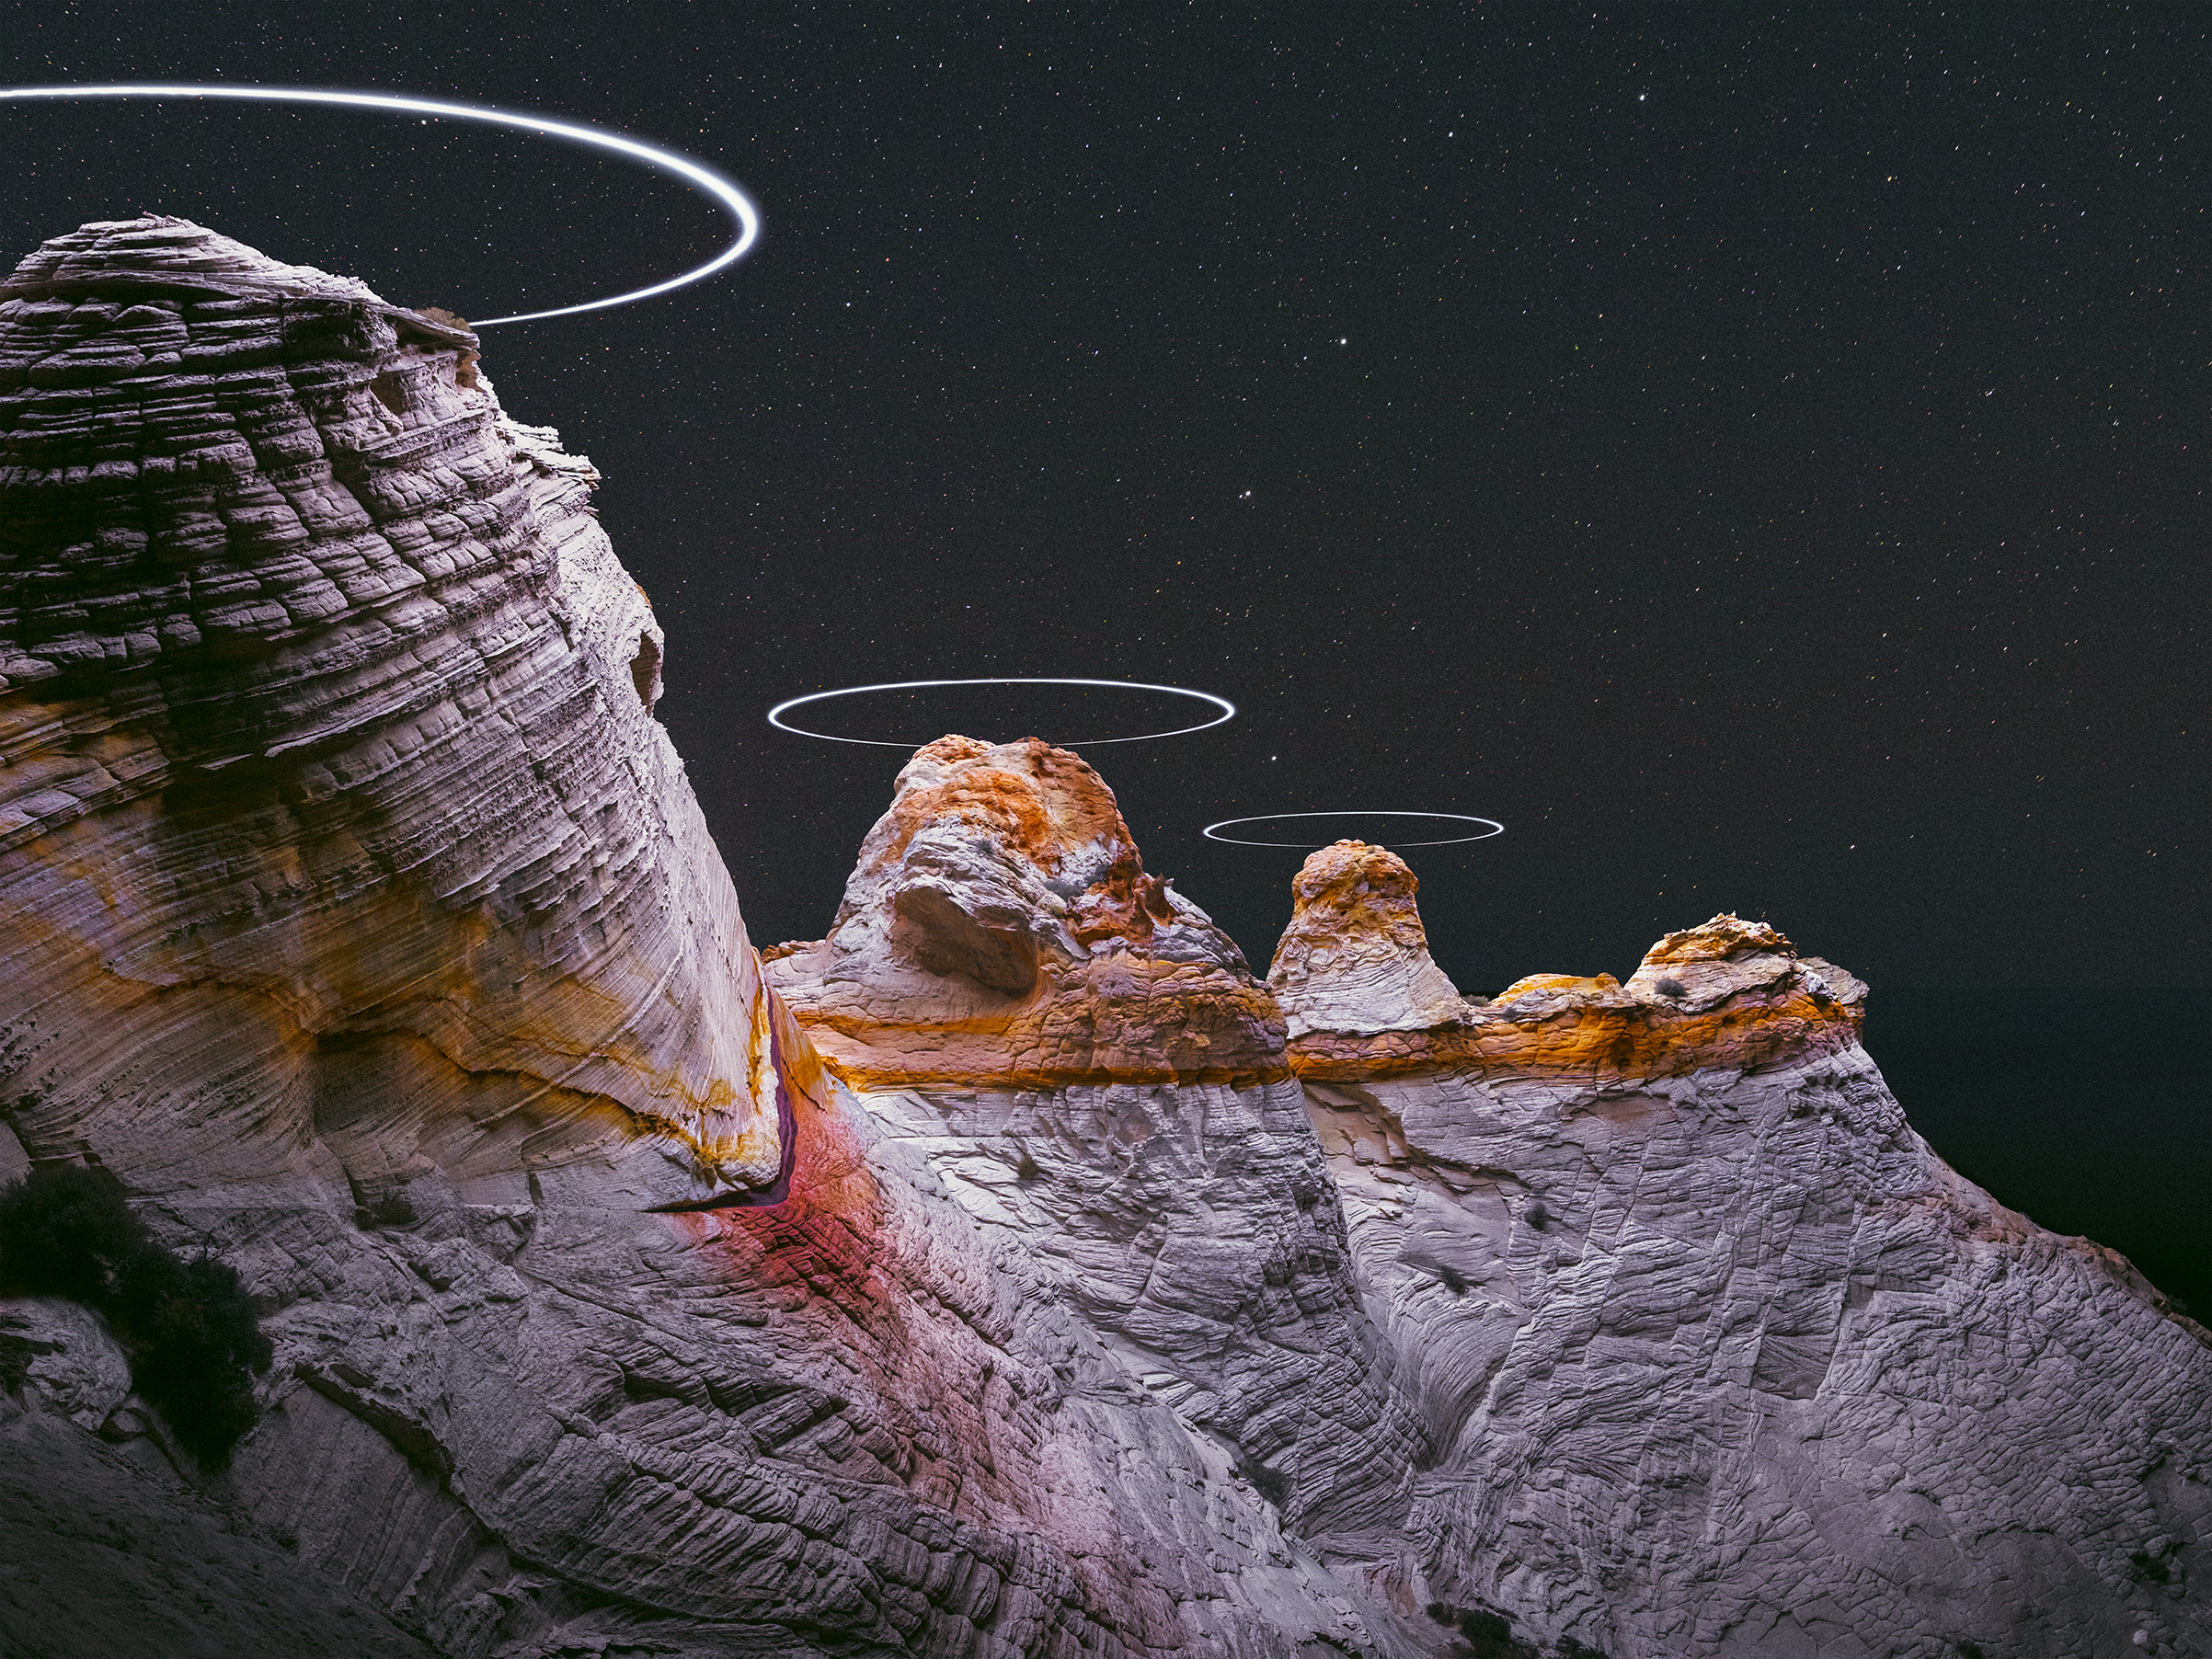 A landscape by Reuben Wu, who achieves otherworldly lighting effects in his photographs by using custom-modified drones